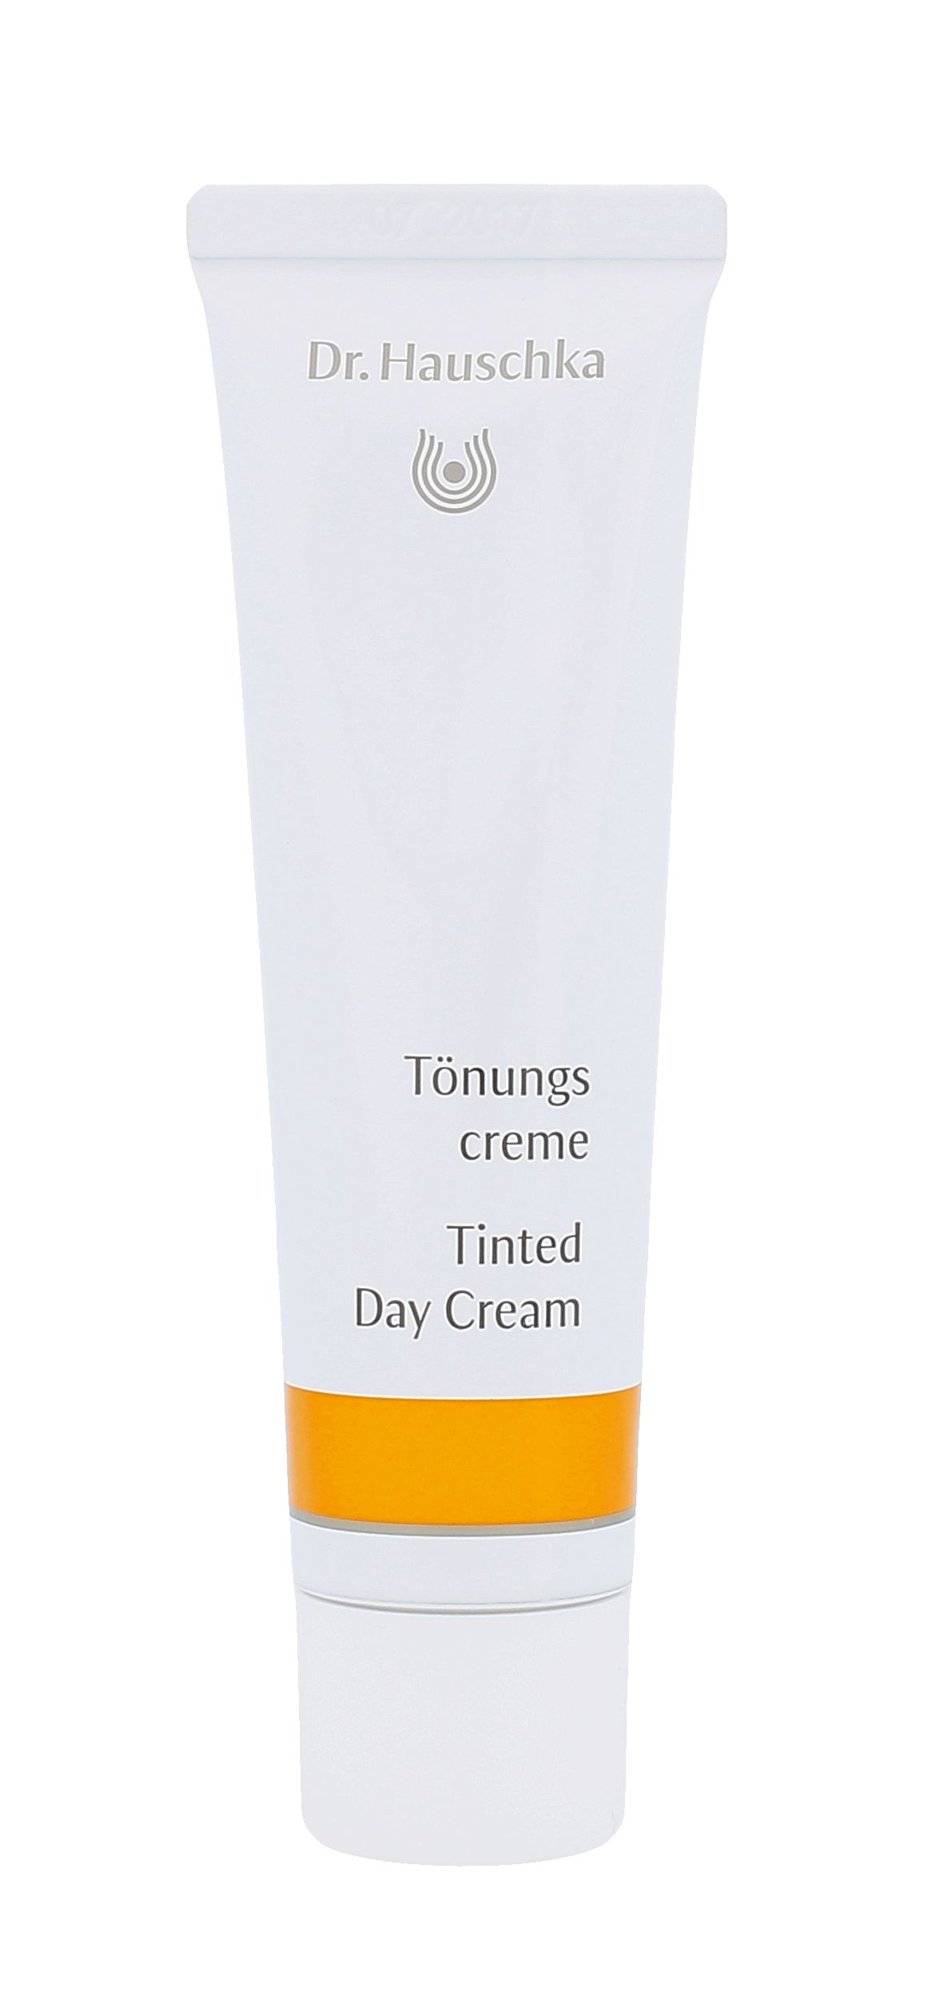 Dr. Hauschka Tinted Day Cream Cosmetic 30ml